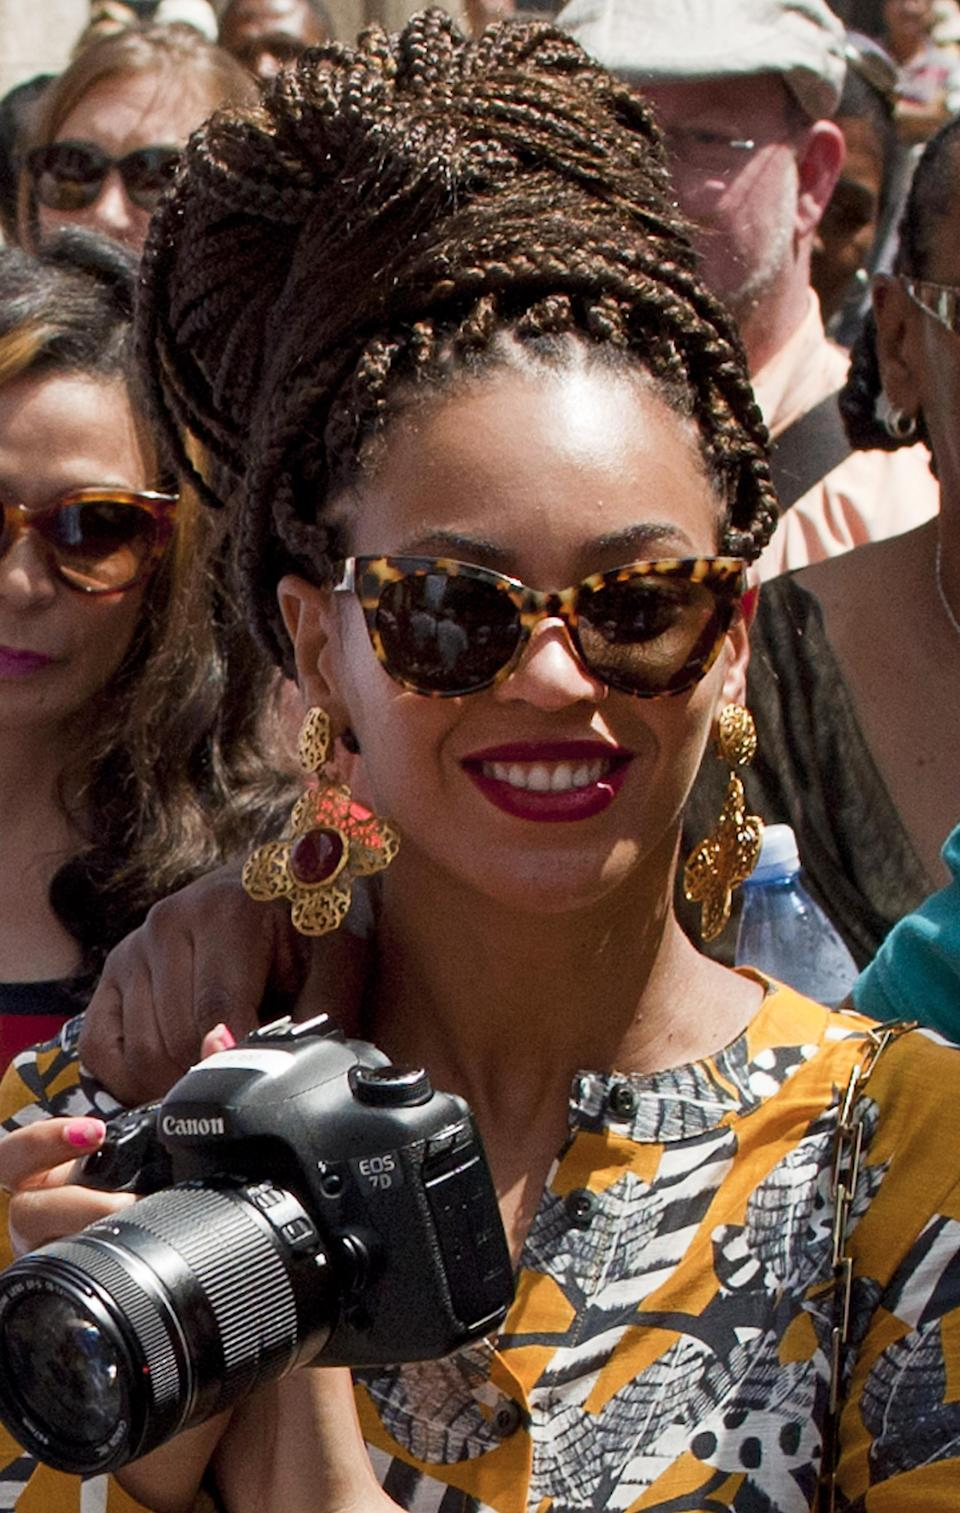 U.S. singer Beyonce holds her camera as she tours Old Havana, Cuba, Thursday, April 4, 2013. Beyonce is in Havana with her husband, rapper Jay-Z, on their fifth wedding anniversary. (AP Photo/Ramon Espinosa)